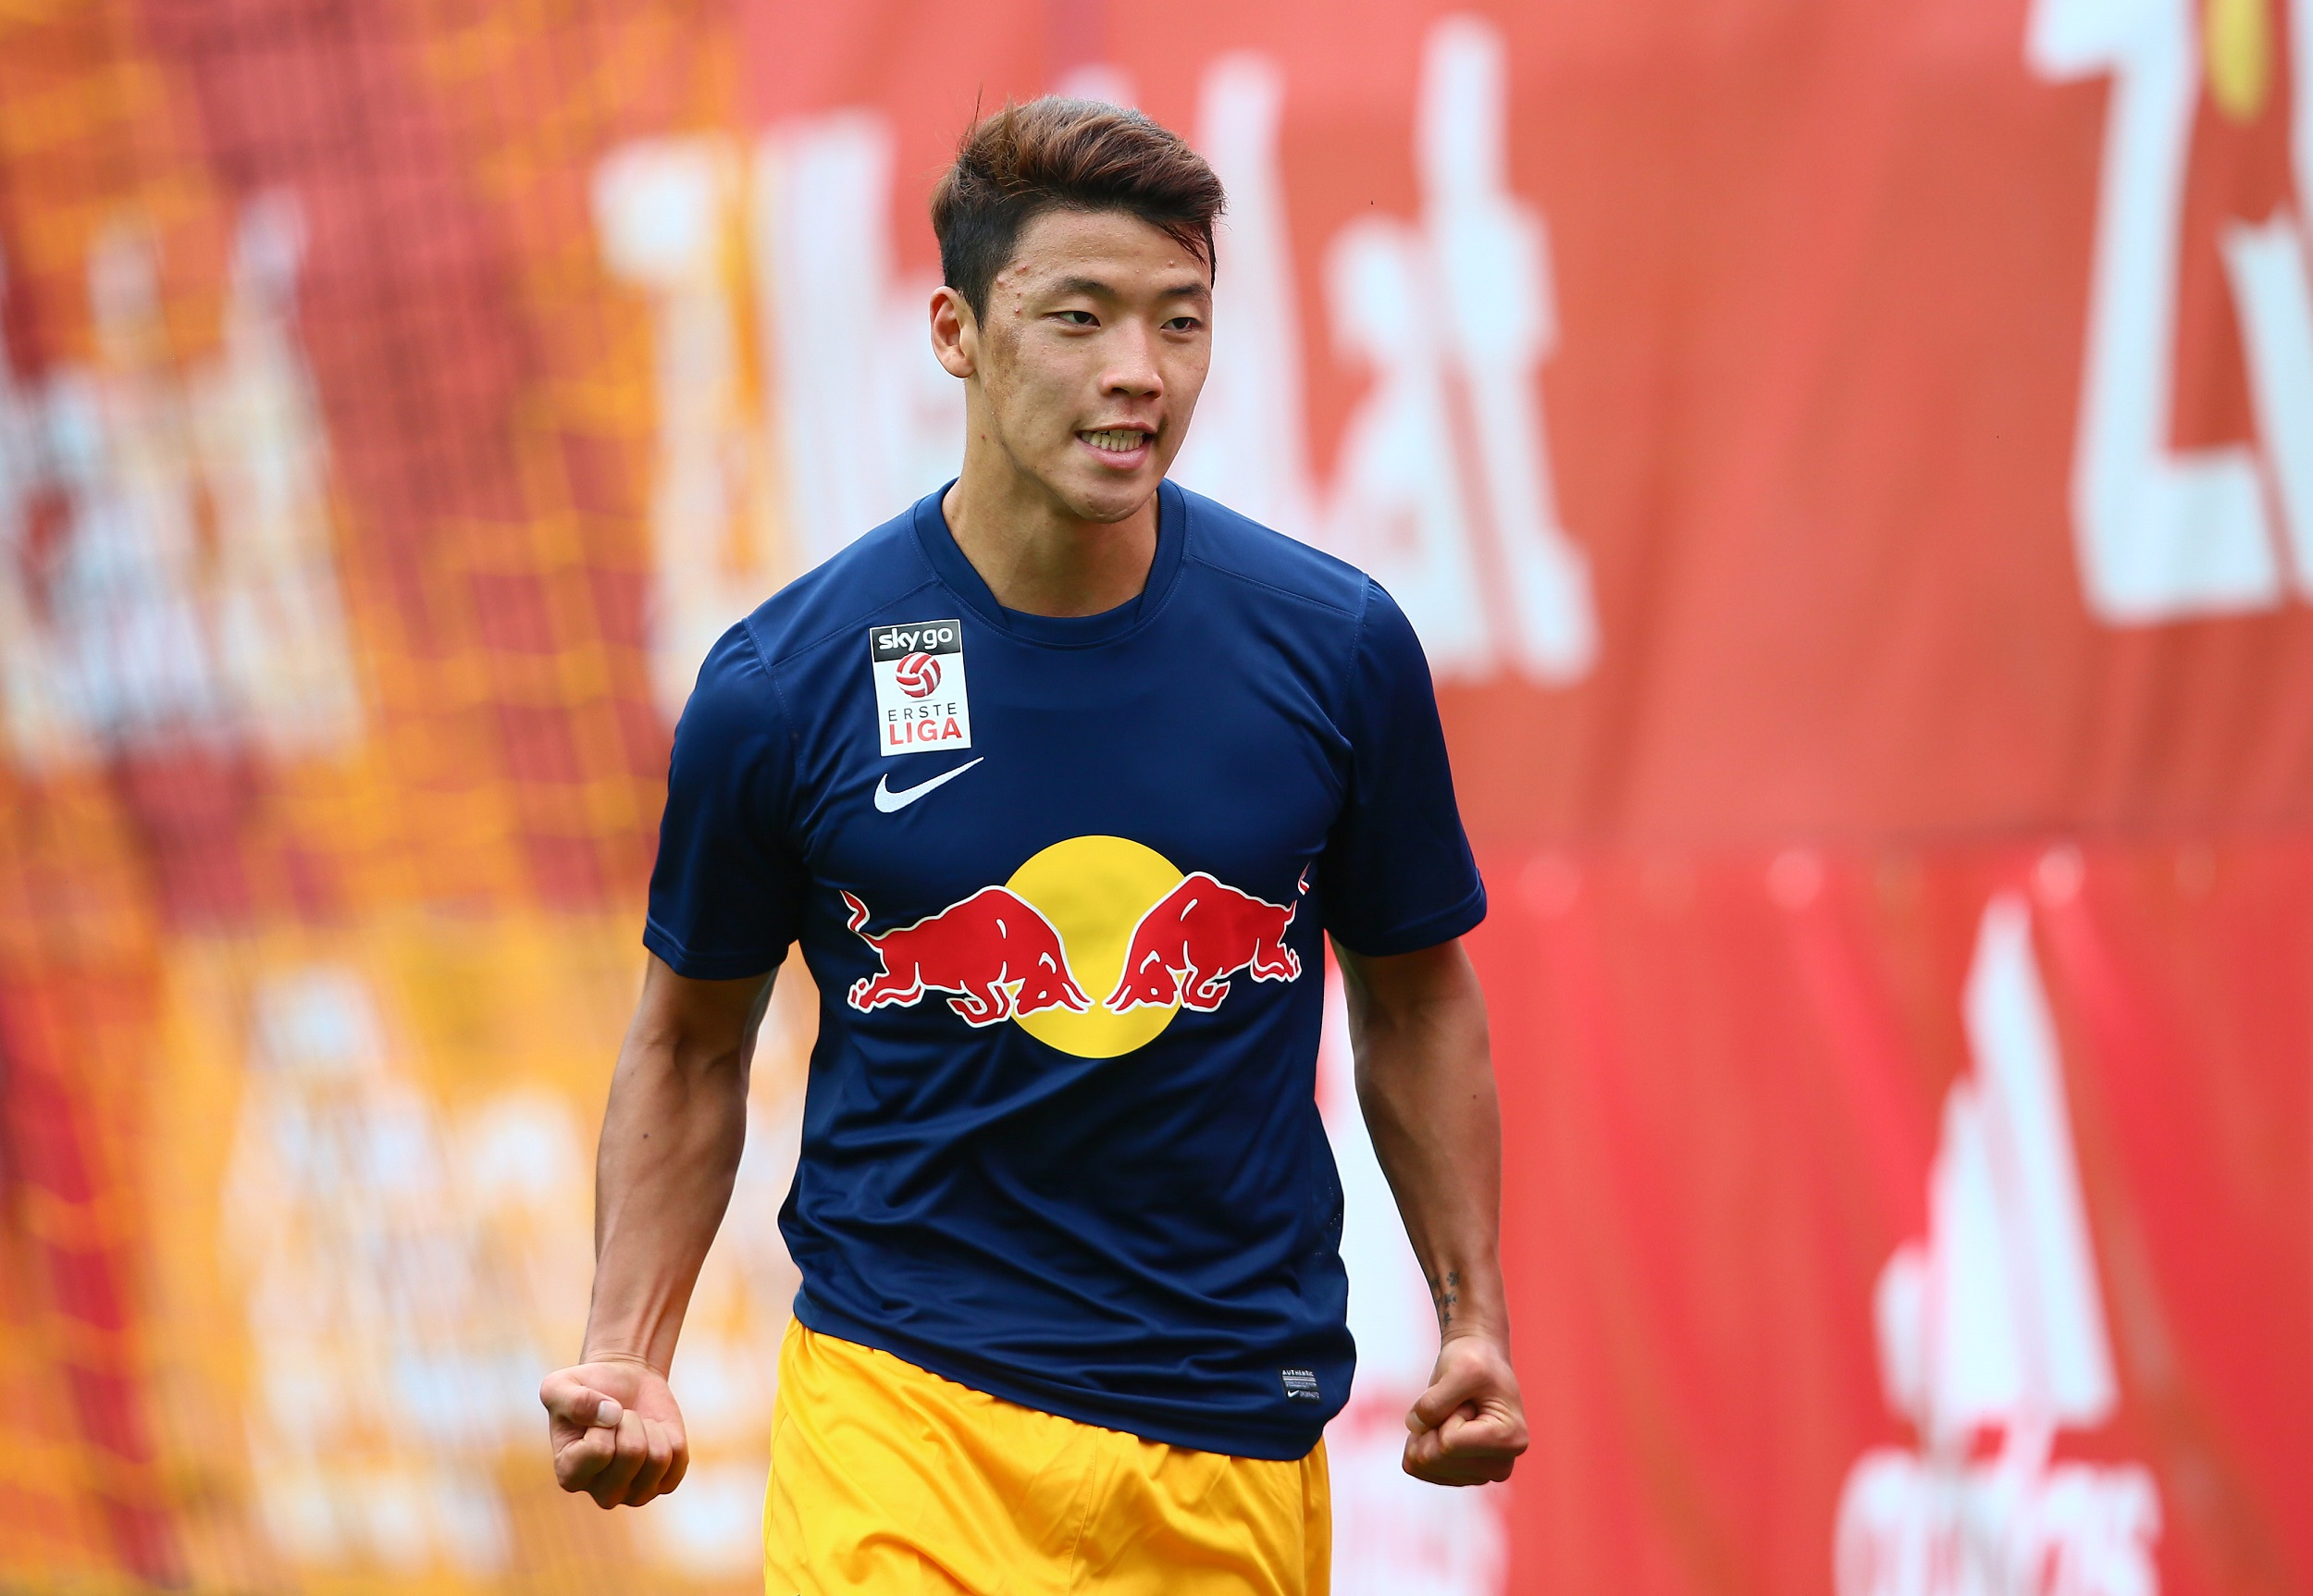 Report Rb Leipzig Set To Sign Hwang Hee Chan From Rb Salzburg